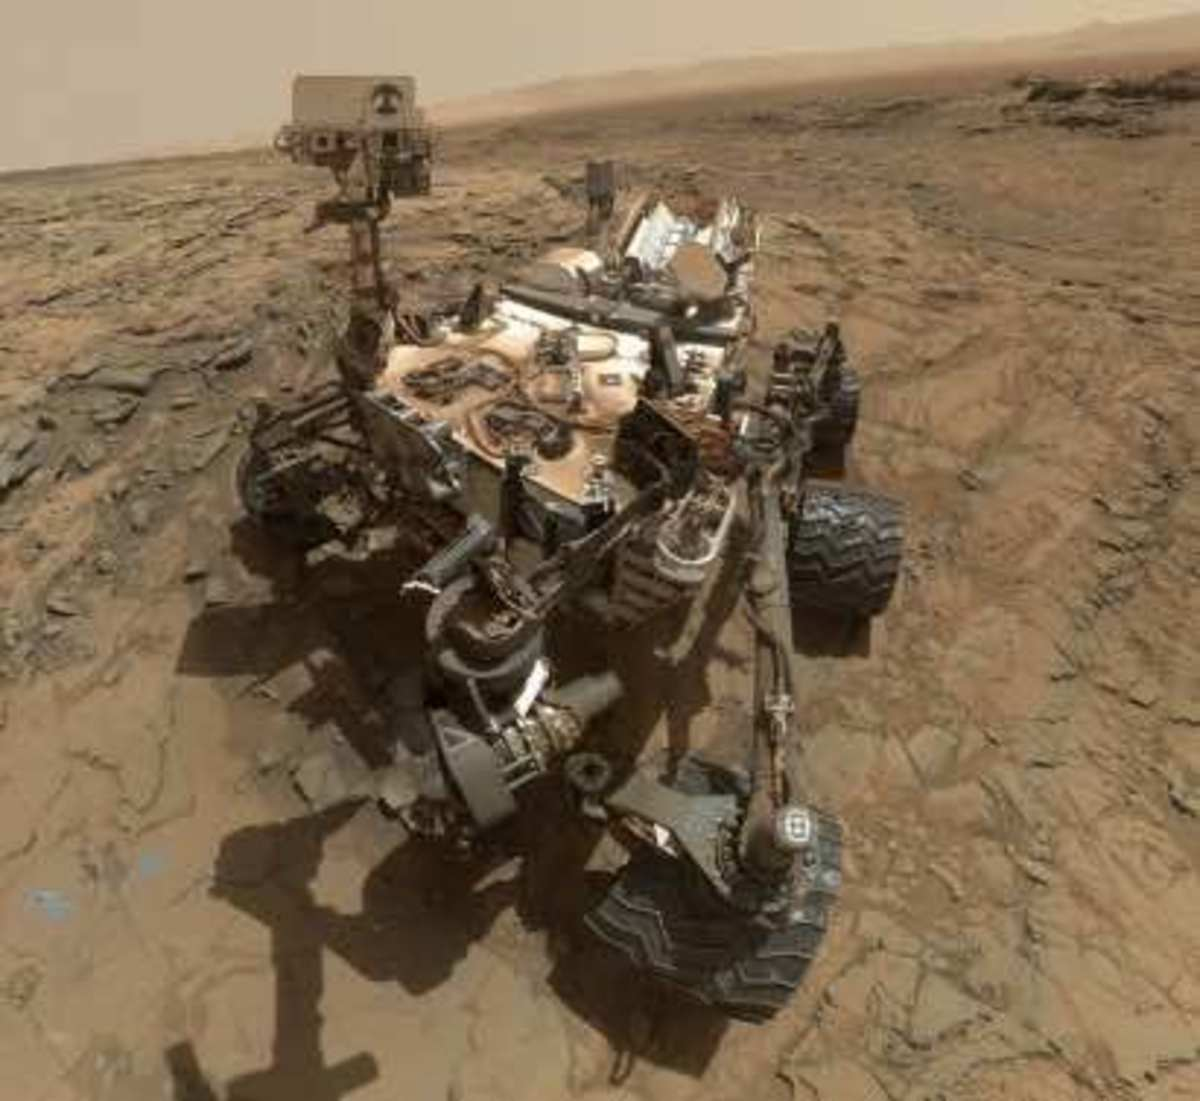 Curiosity Rover Selfie in Bigsky Region of Mars